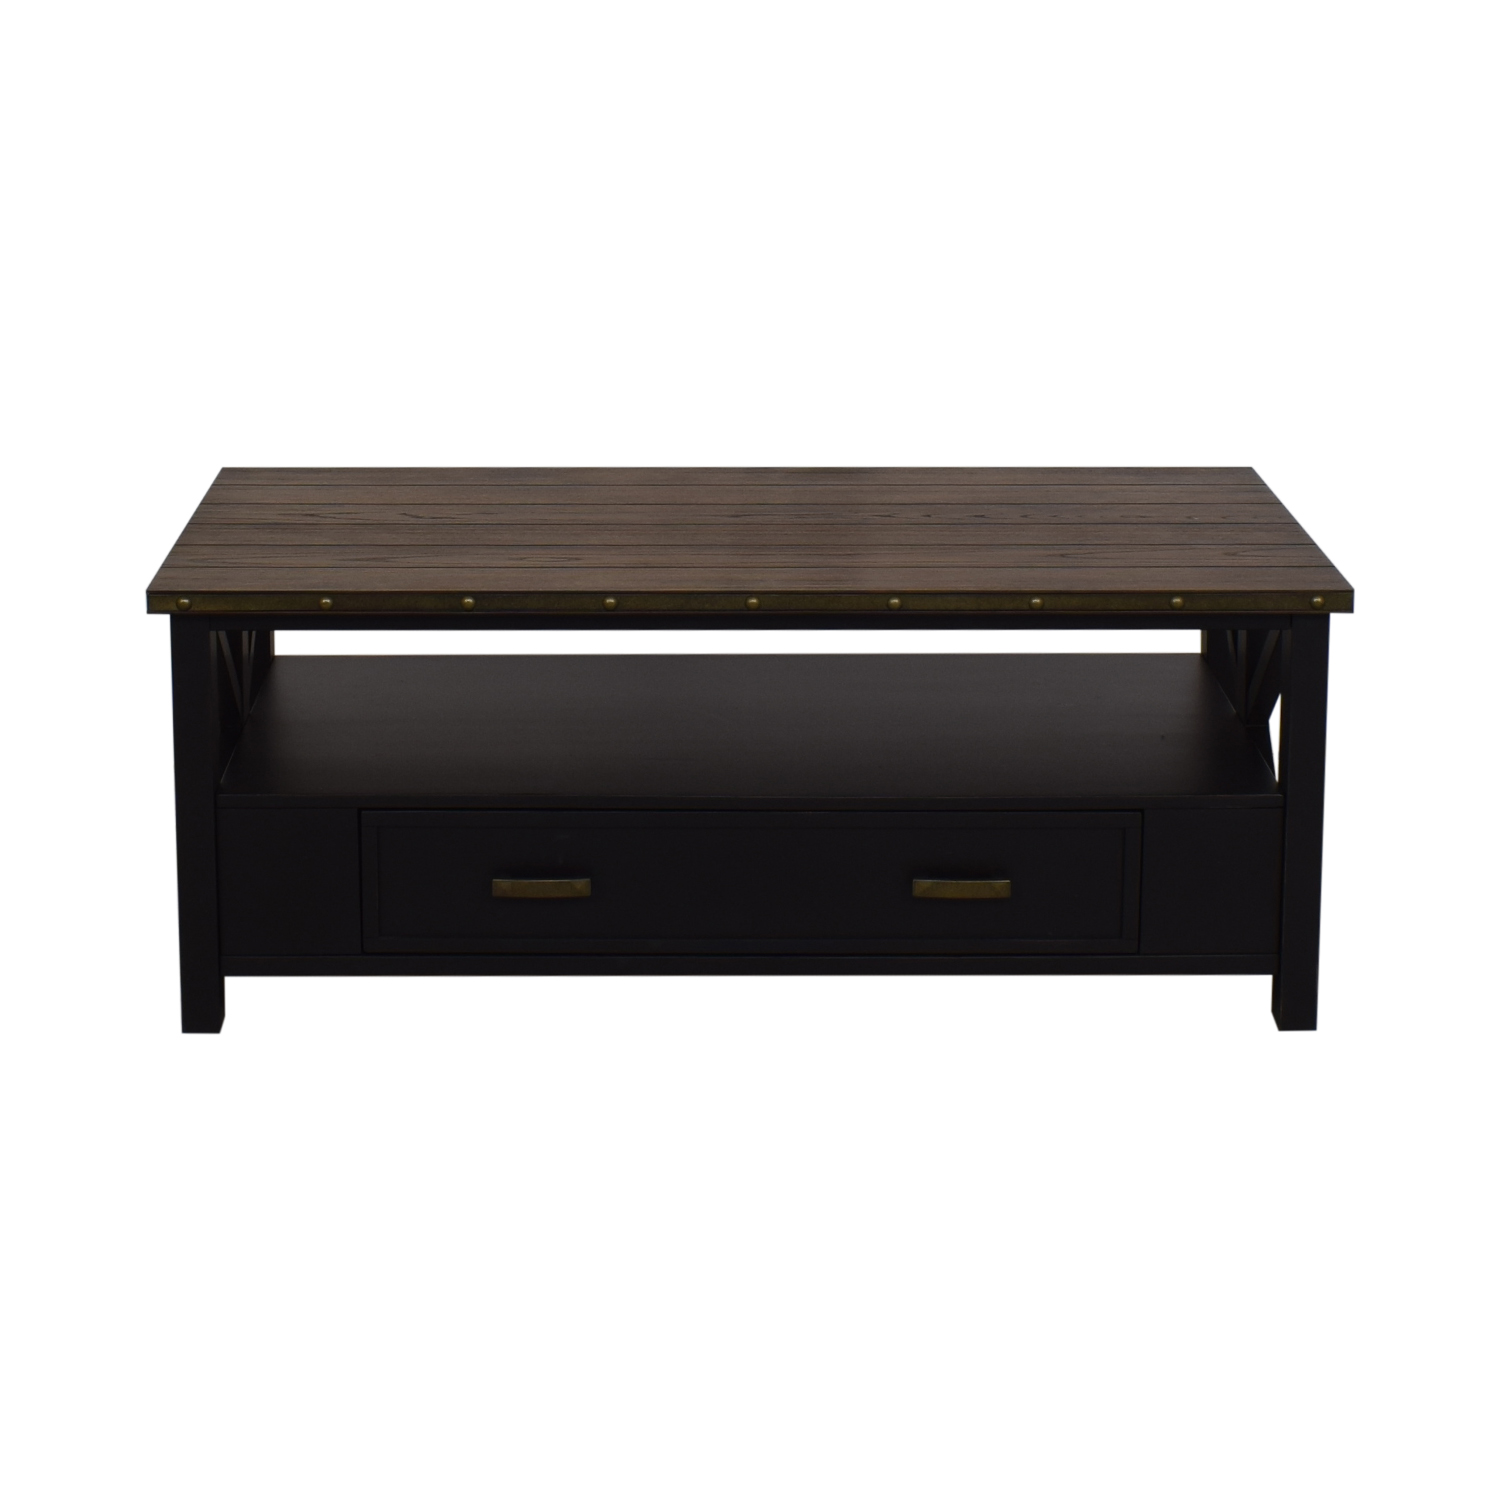 Raymour & Flanigan Raymour and Flanigan Brennan Coffee Table on sale